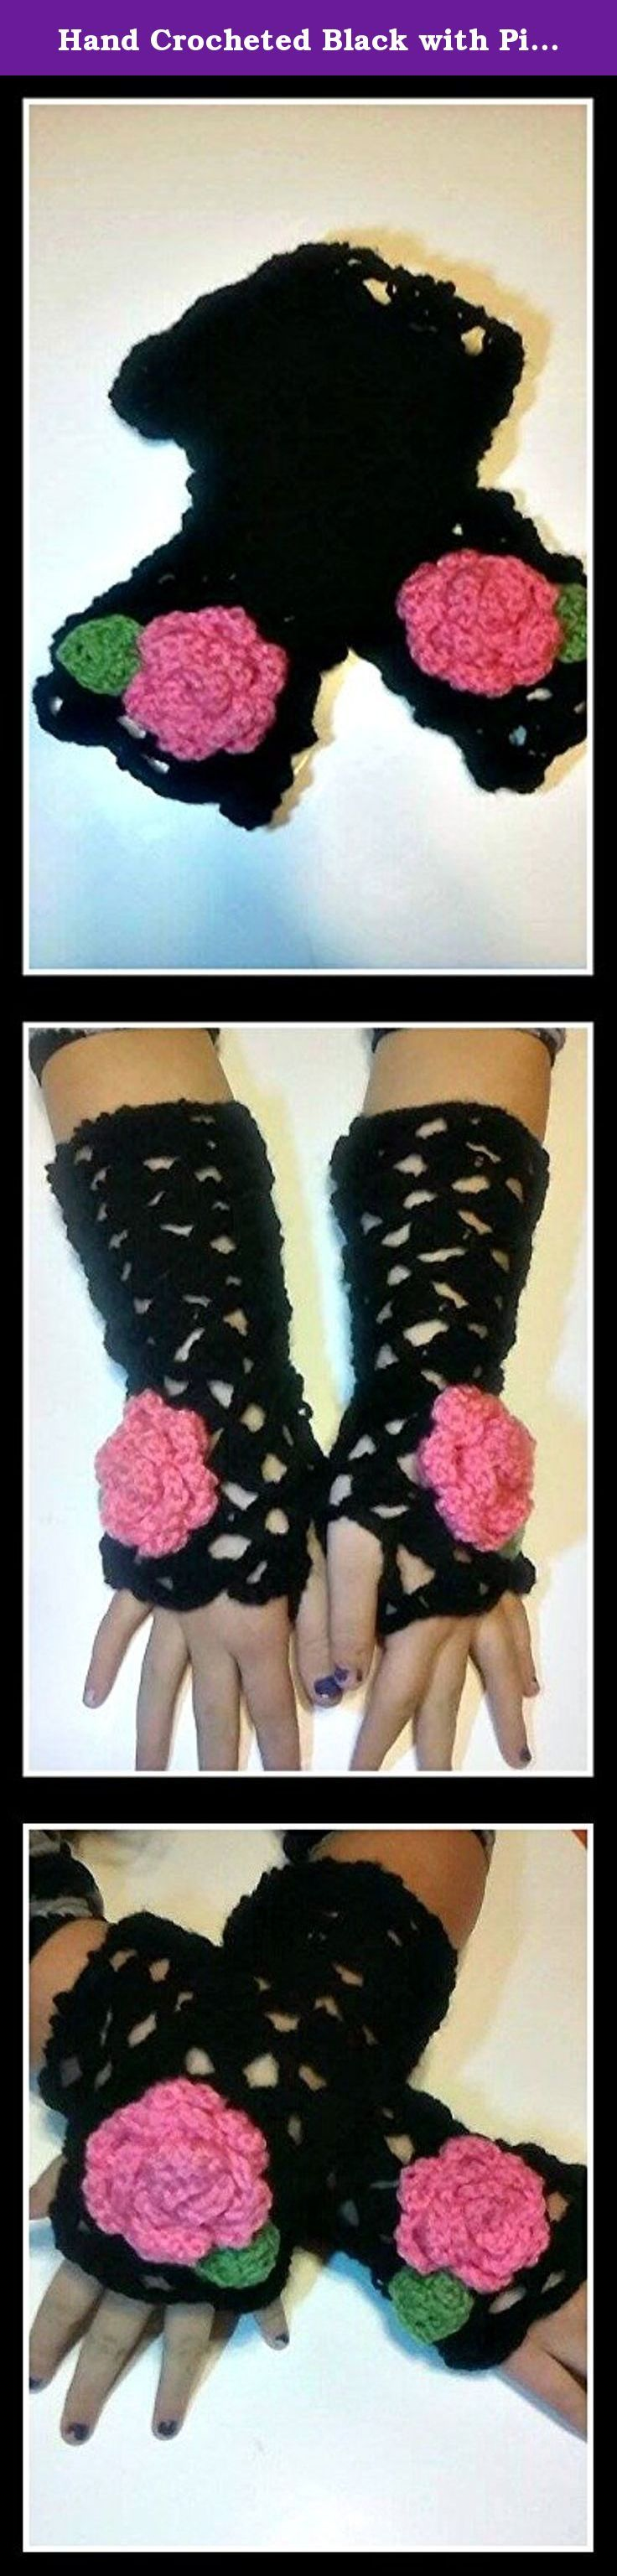 Hand Crocheted Black with Pink Rose Fingerless Mittens, Victorian Fingerless Gloves Hand Warmers. Fingerless Victorian lace mittens are crochet with black yarn and a pink rose attached. Mittens are 10 inches in length and are handmade using black and pink acrylic yarn. Easily cleaned, just hand wash and lay flat to dry. Prefect for spring, fall and winter. Fingerless mittens can be made in all sizes and colors, please feel free to email me with any questions you may have. All of our items...